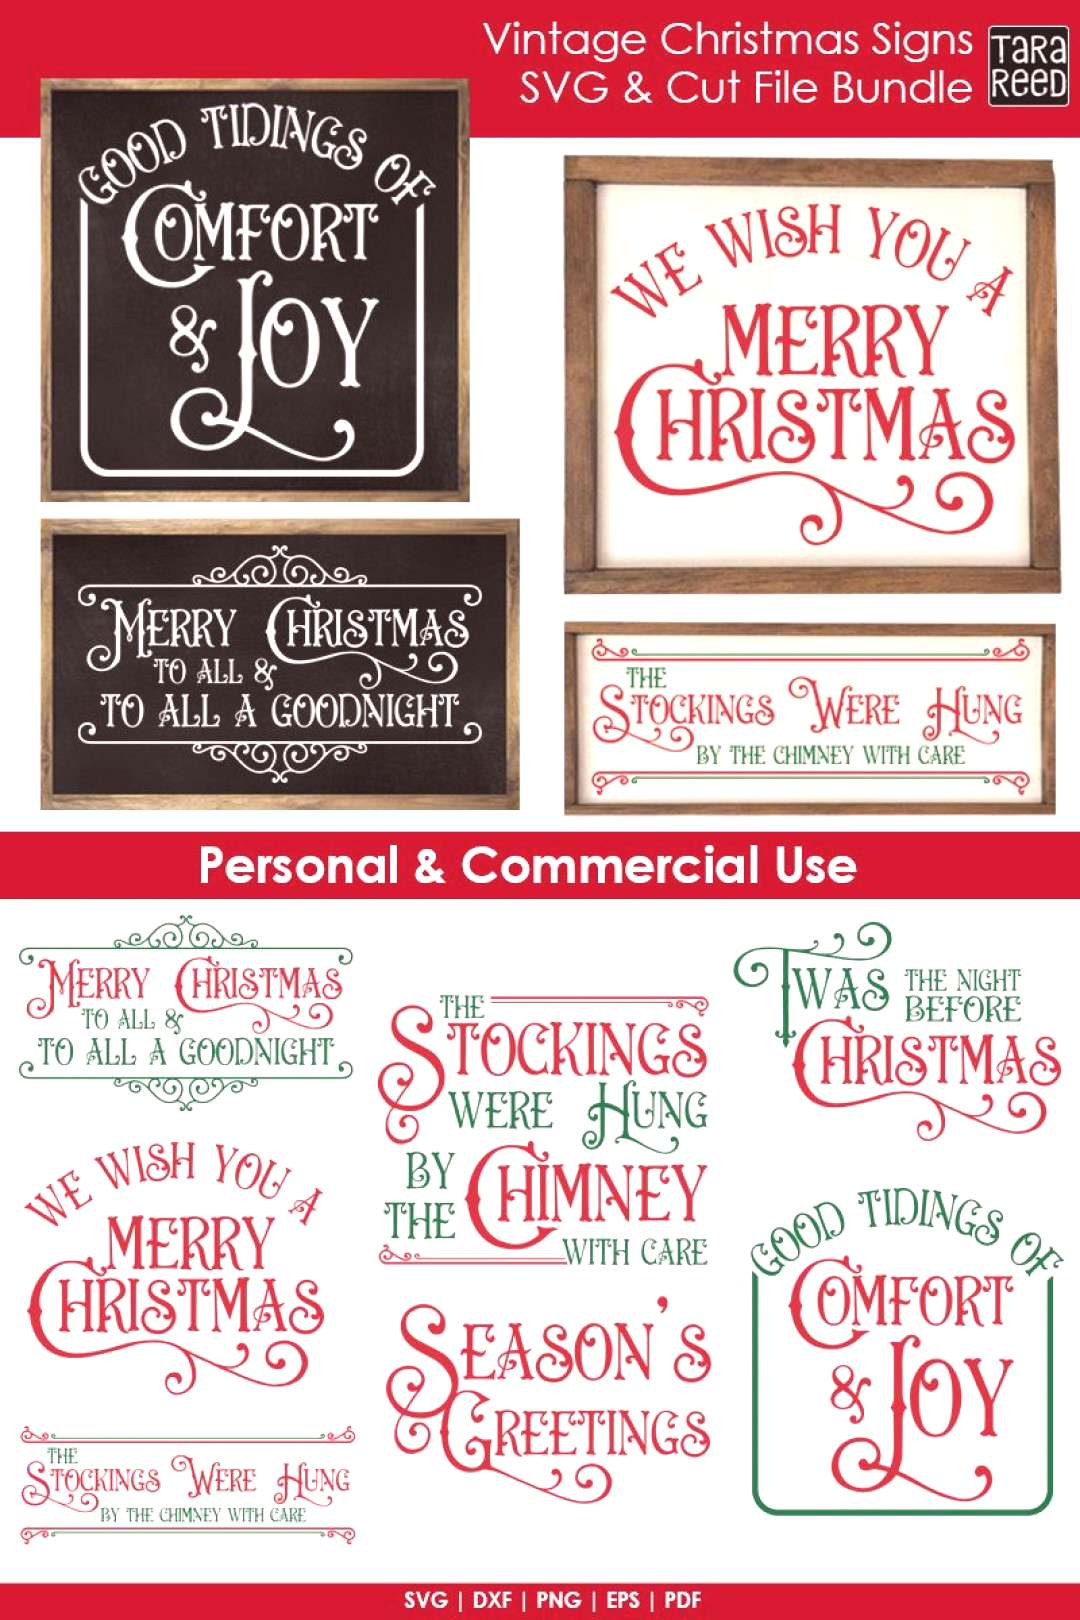 Vintage Christmas Signs - Christmas SVG and Cut Files for Crafters